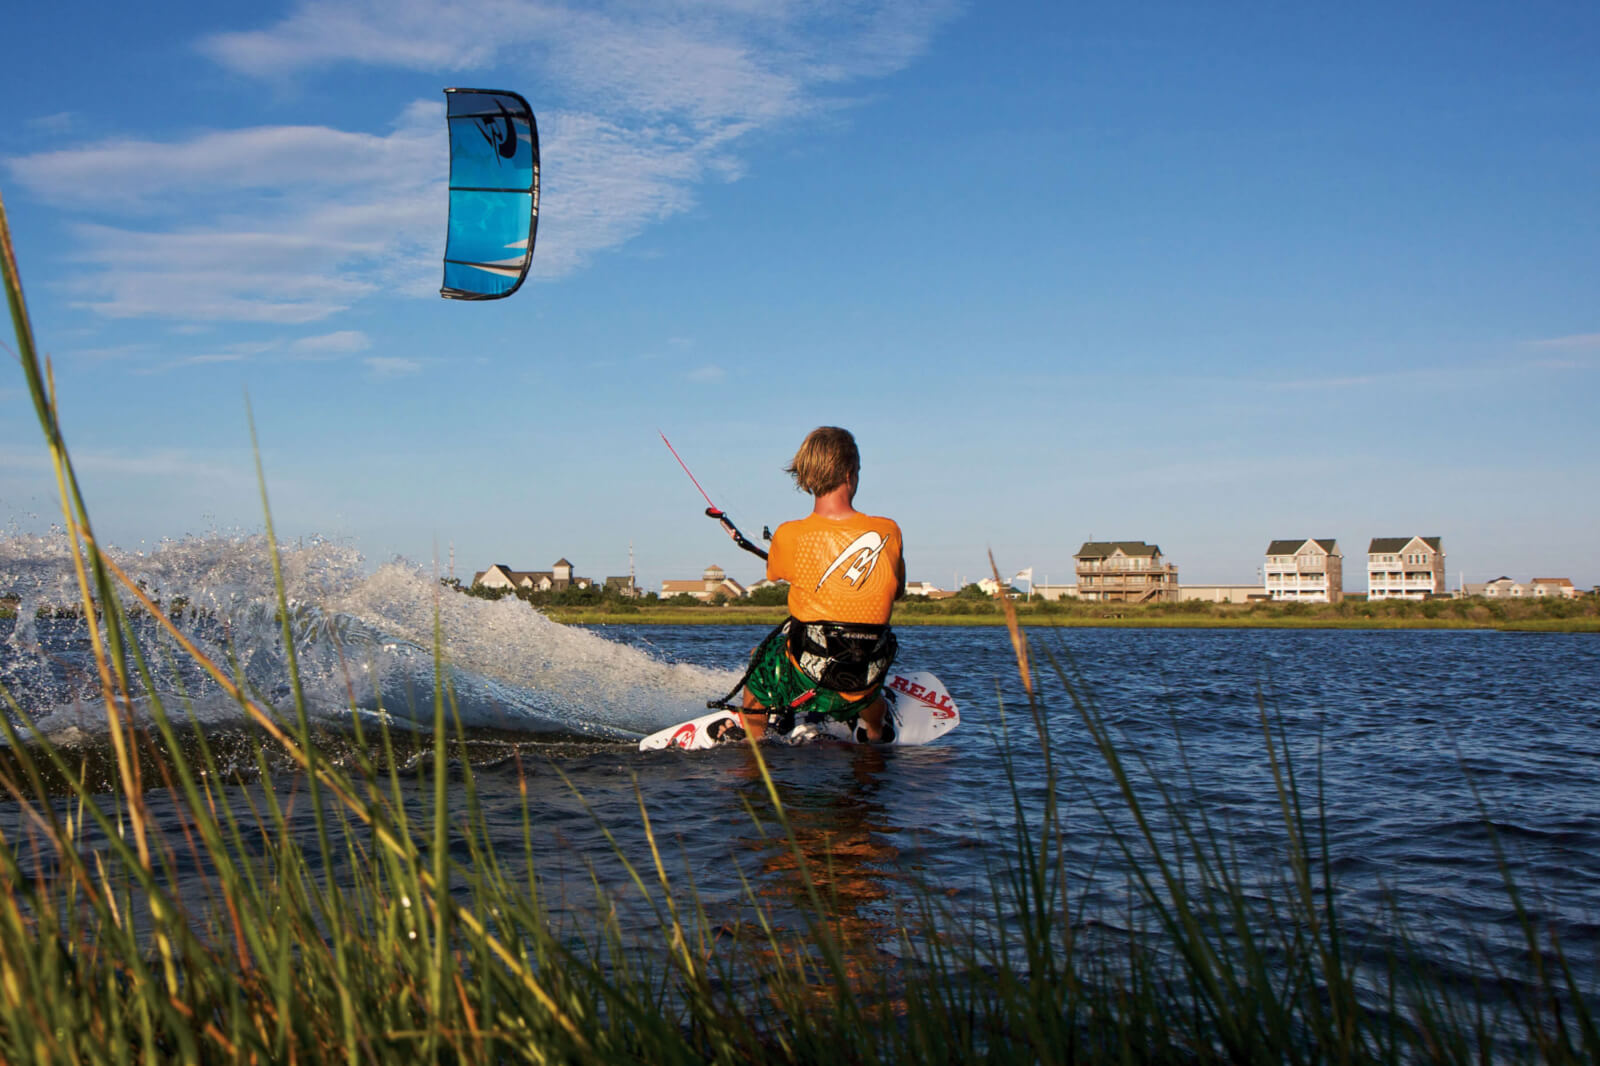 Kiteboarder in the water in The Outer Banks, NC